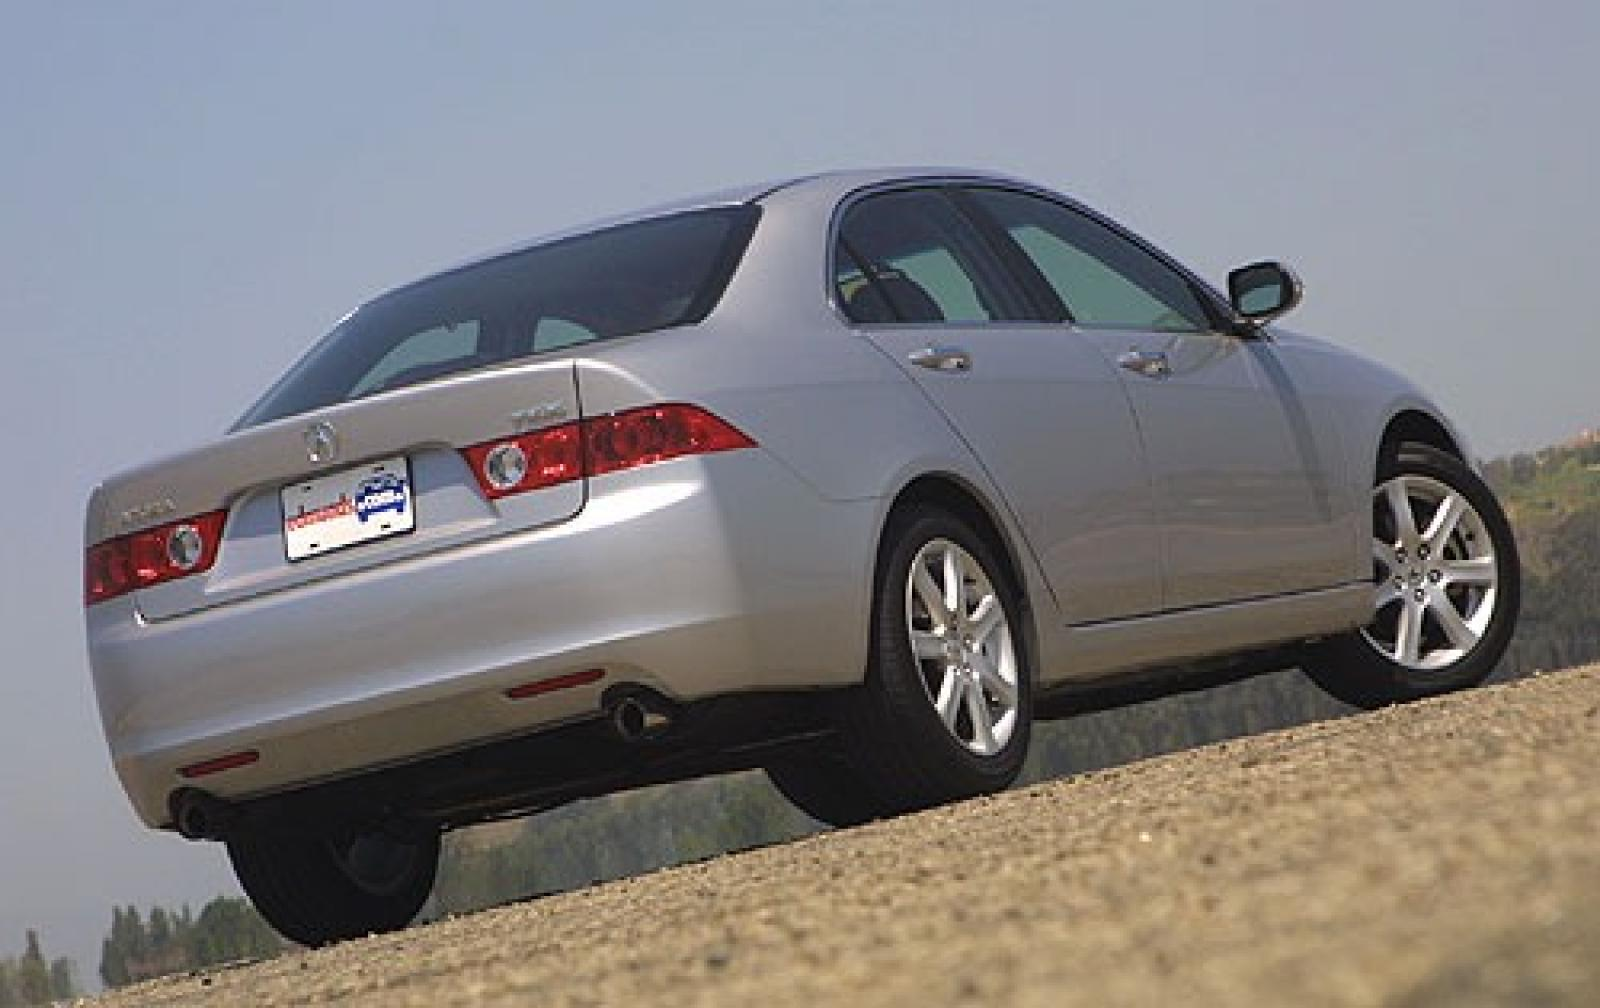 2005 Acura Tsx Information And Photos Neo Drive